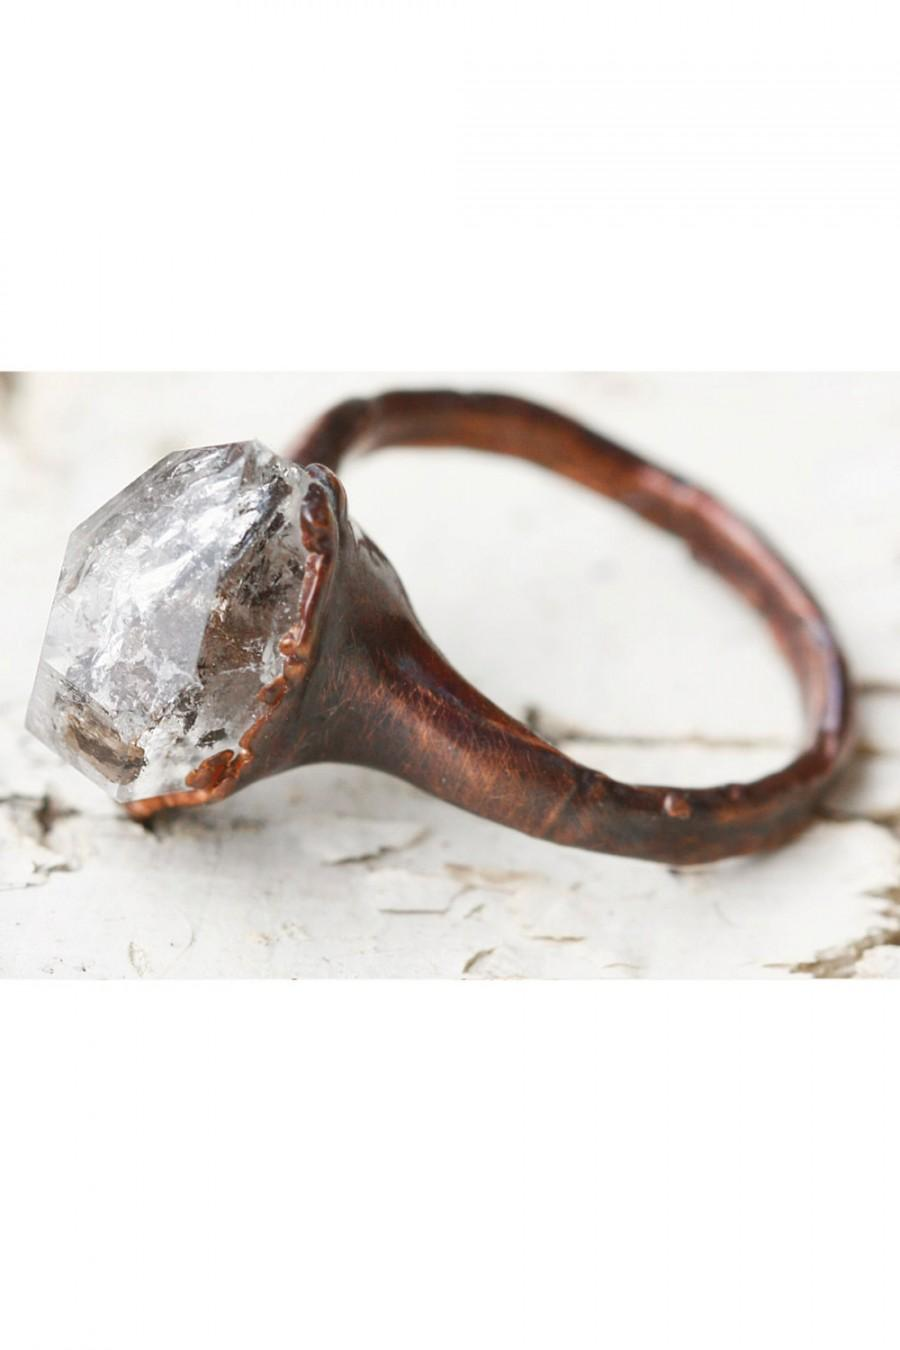 unique engagement ring promise ring for her stone promise ring alternative quartz wedding rings raw quartz ring quartz crystal ring boho - Unique Wedding Rings For Her